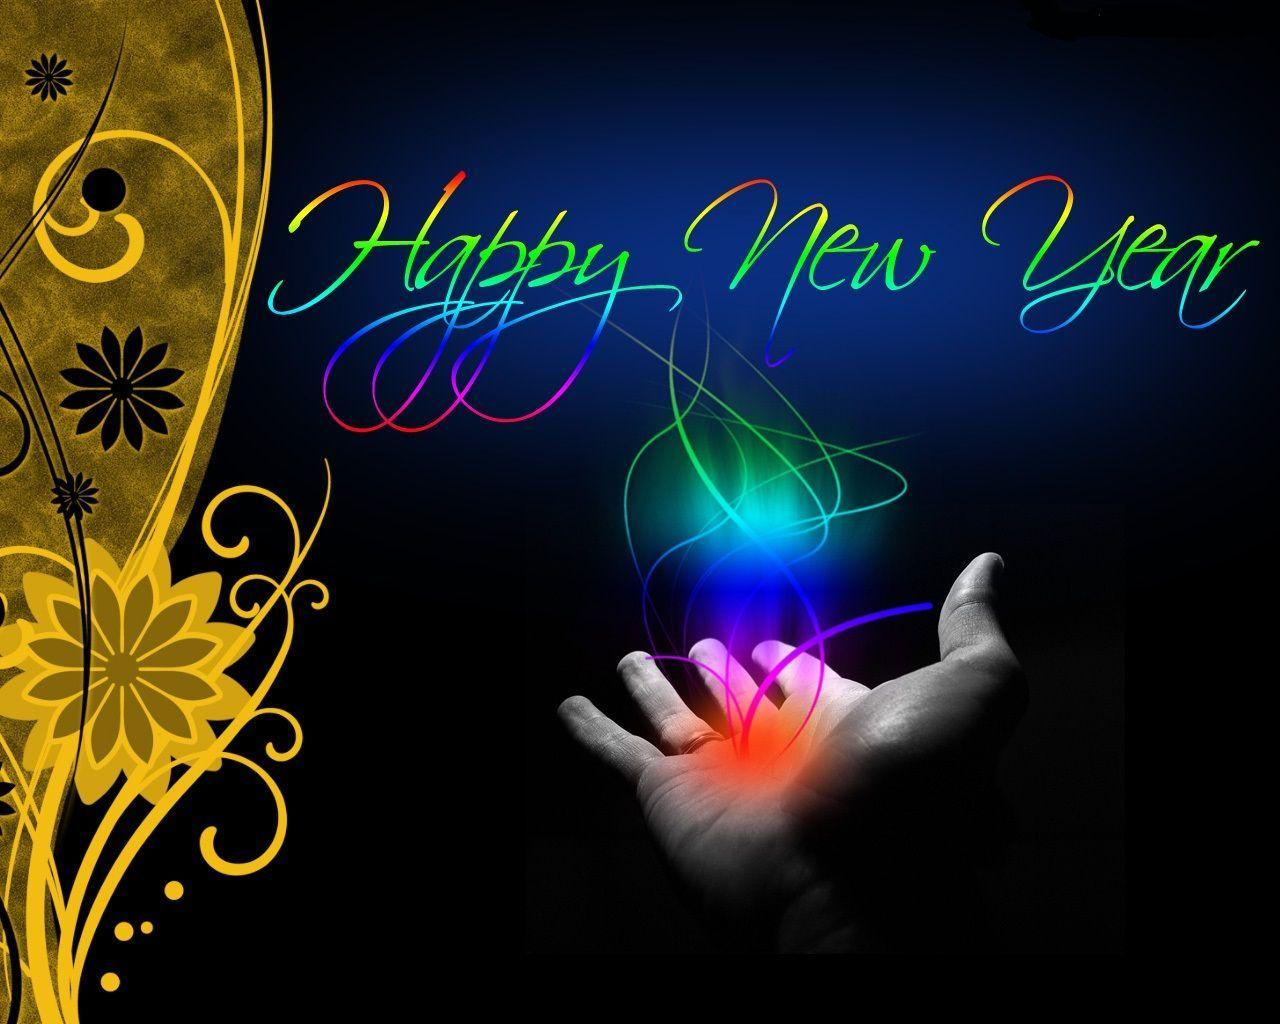 happy_new_year_wallpaper 7jpg